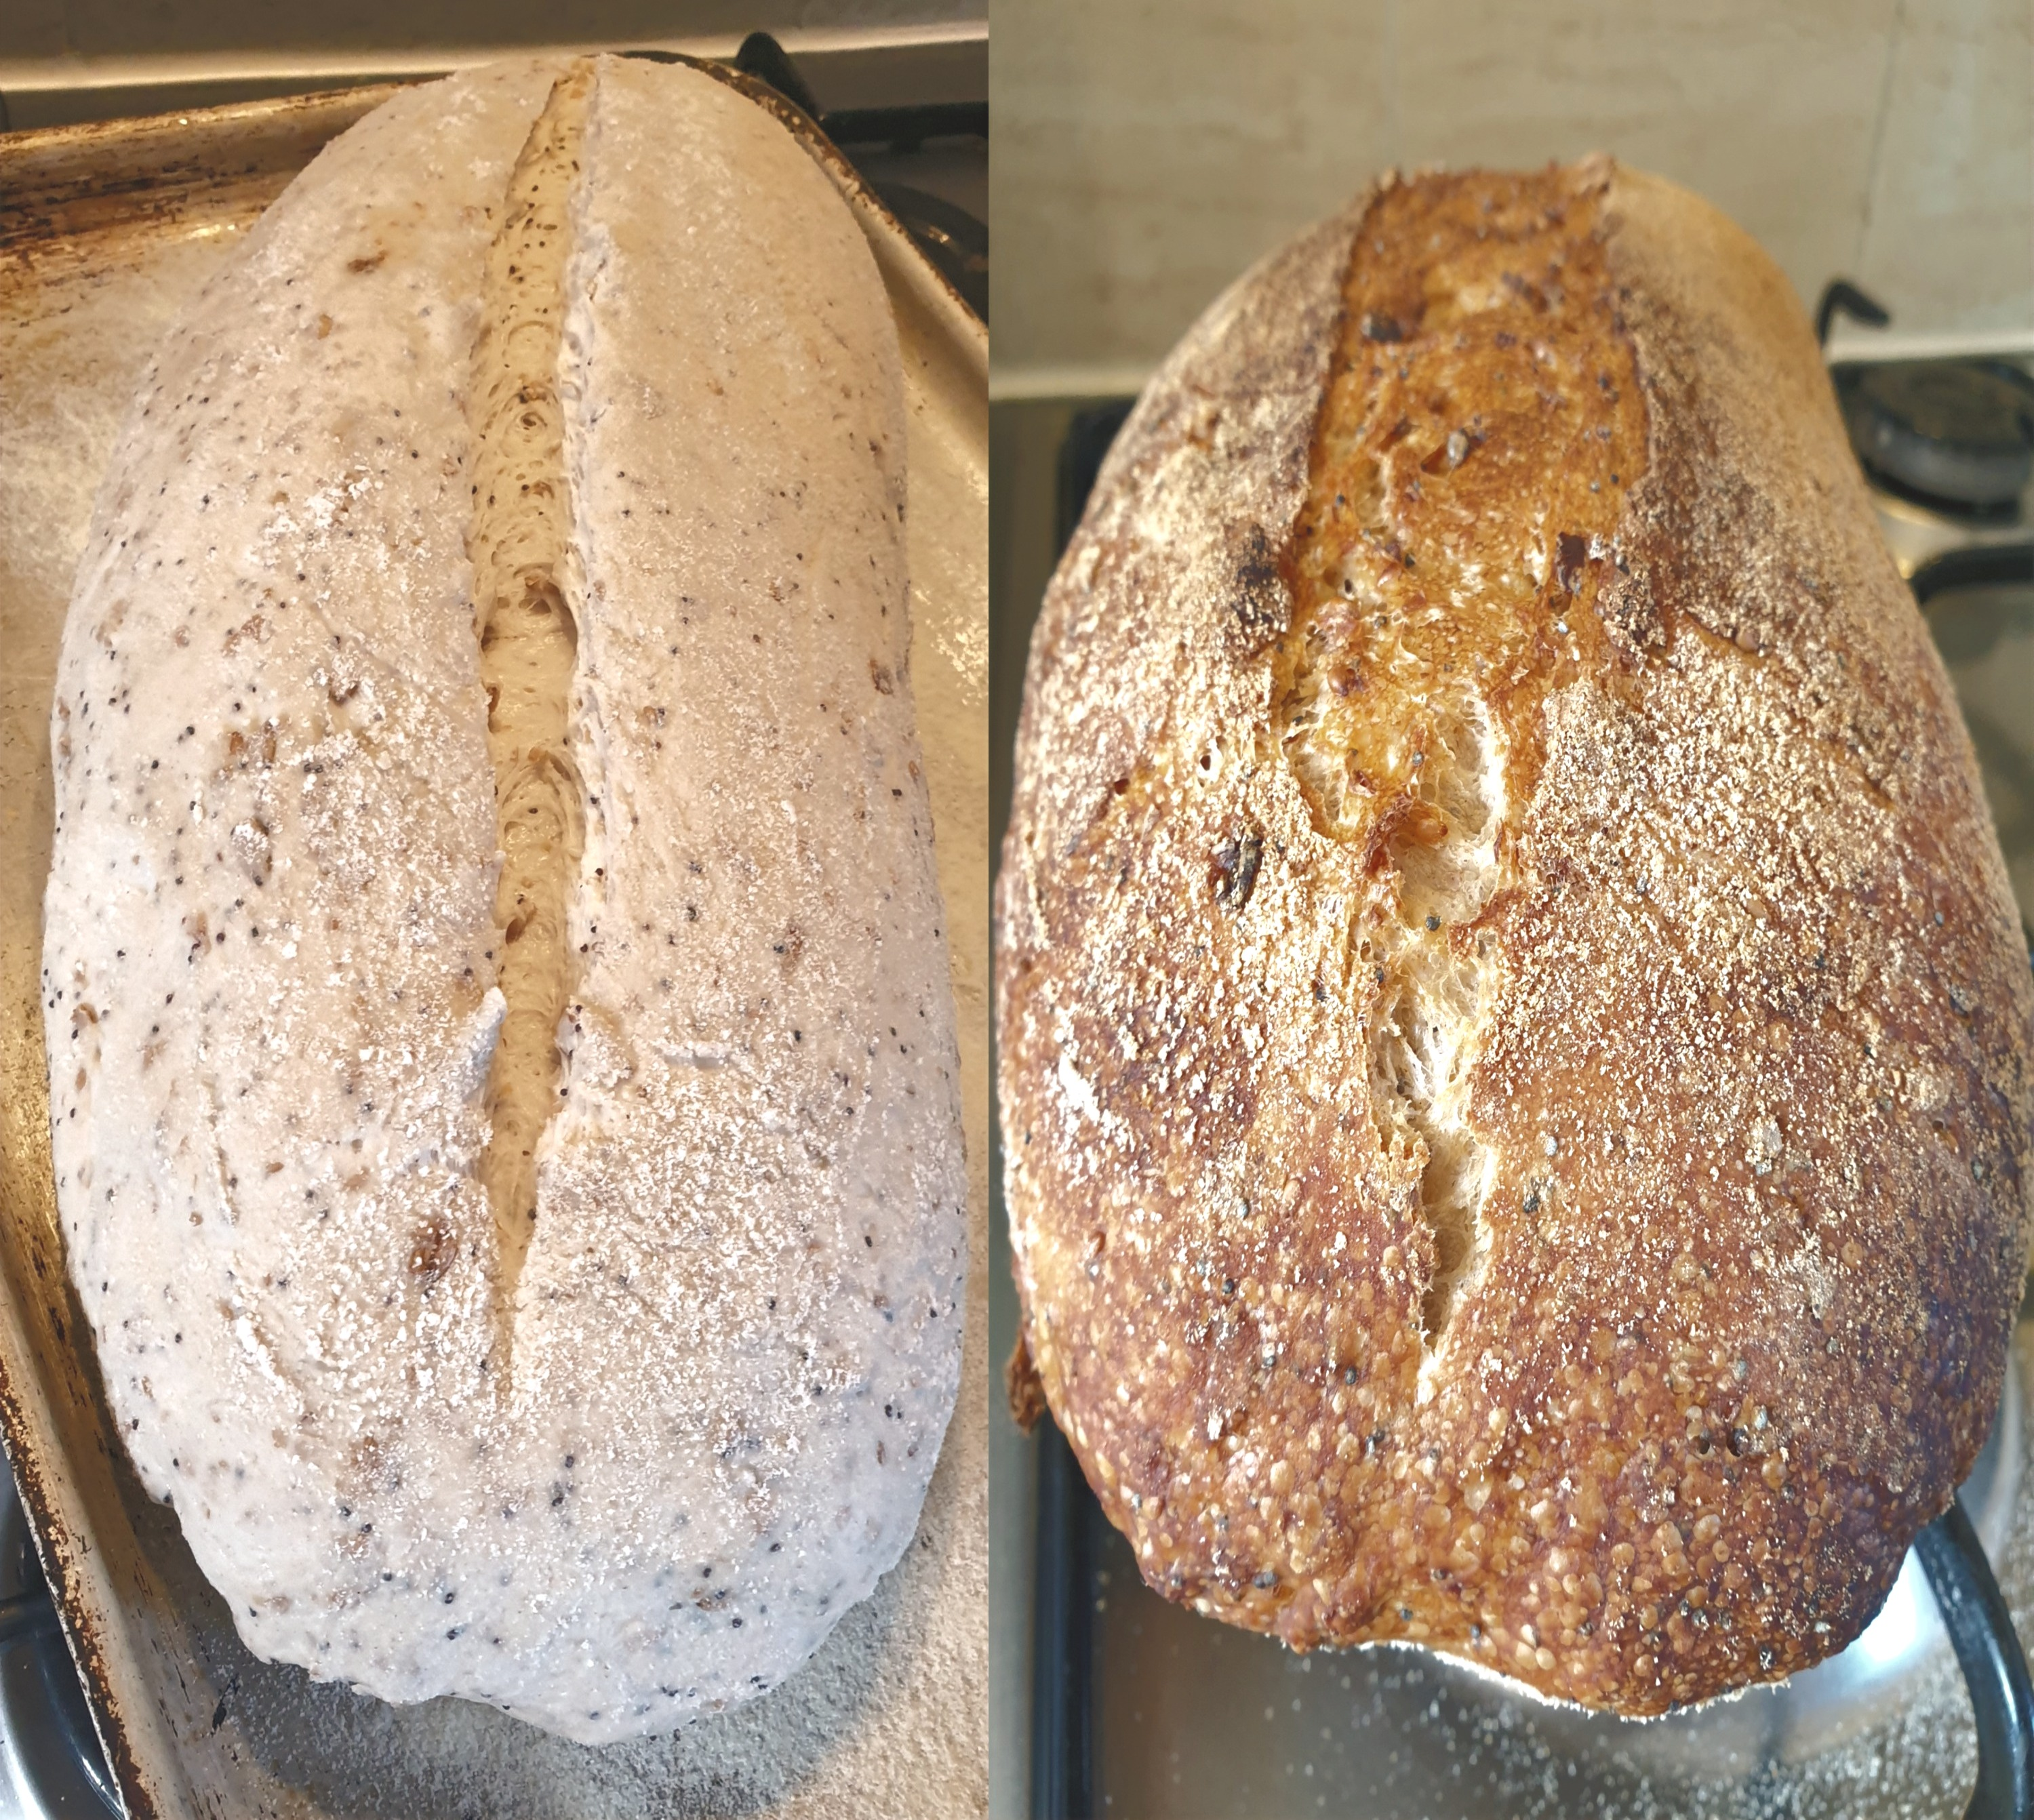 Sourdough%20before%20%26%20after_edited.